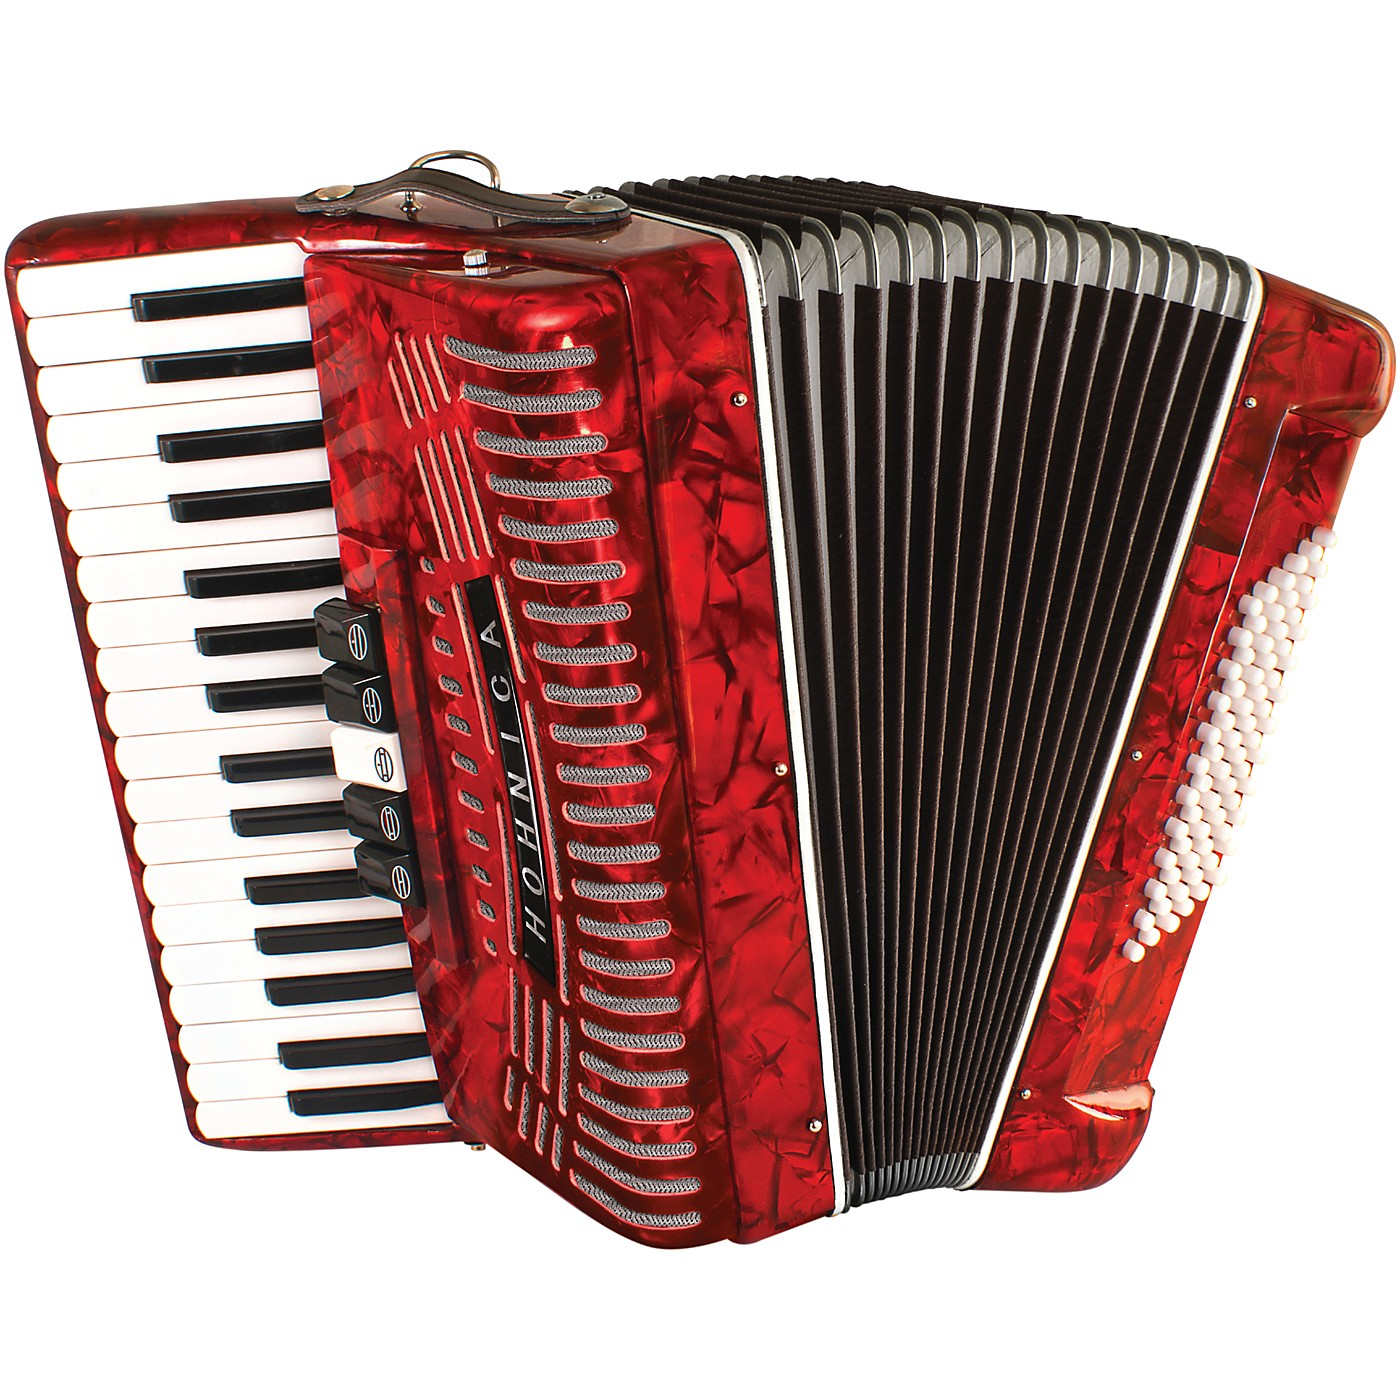 Hohner 72 Bass Entry Level Piano Accordion thumbnail